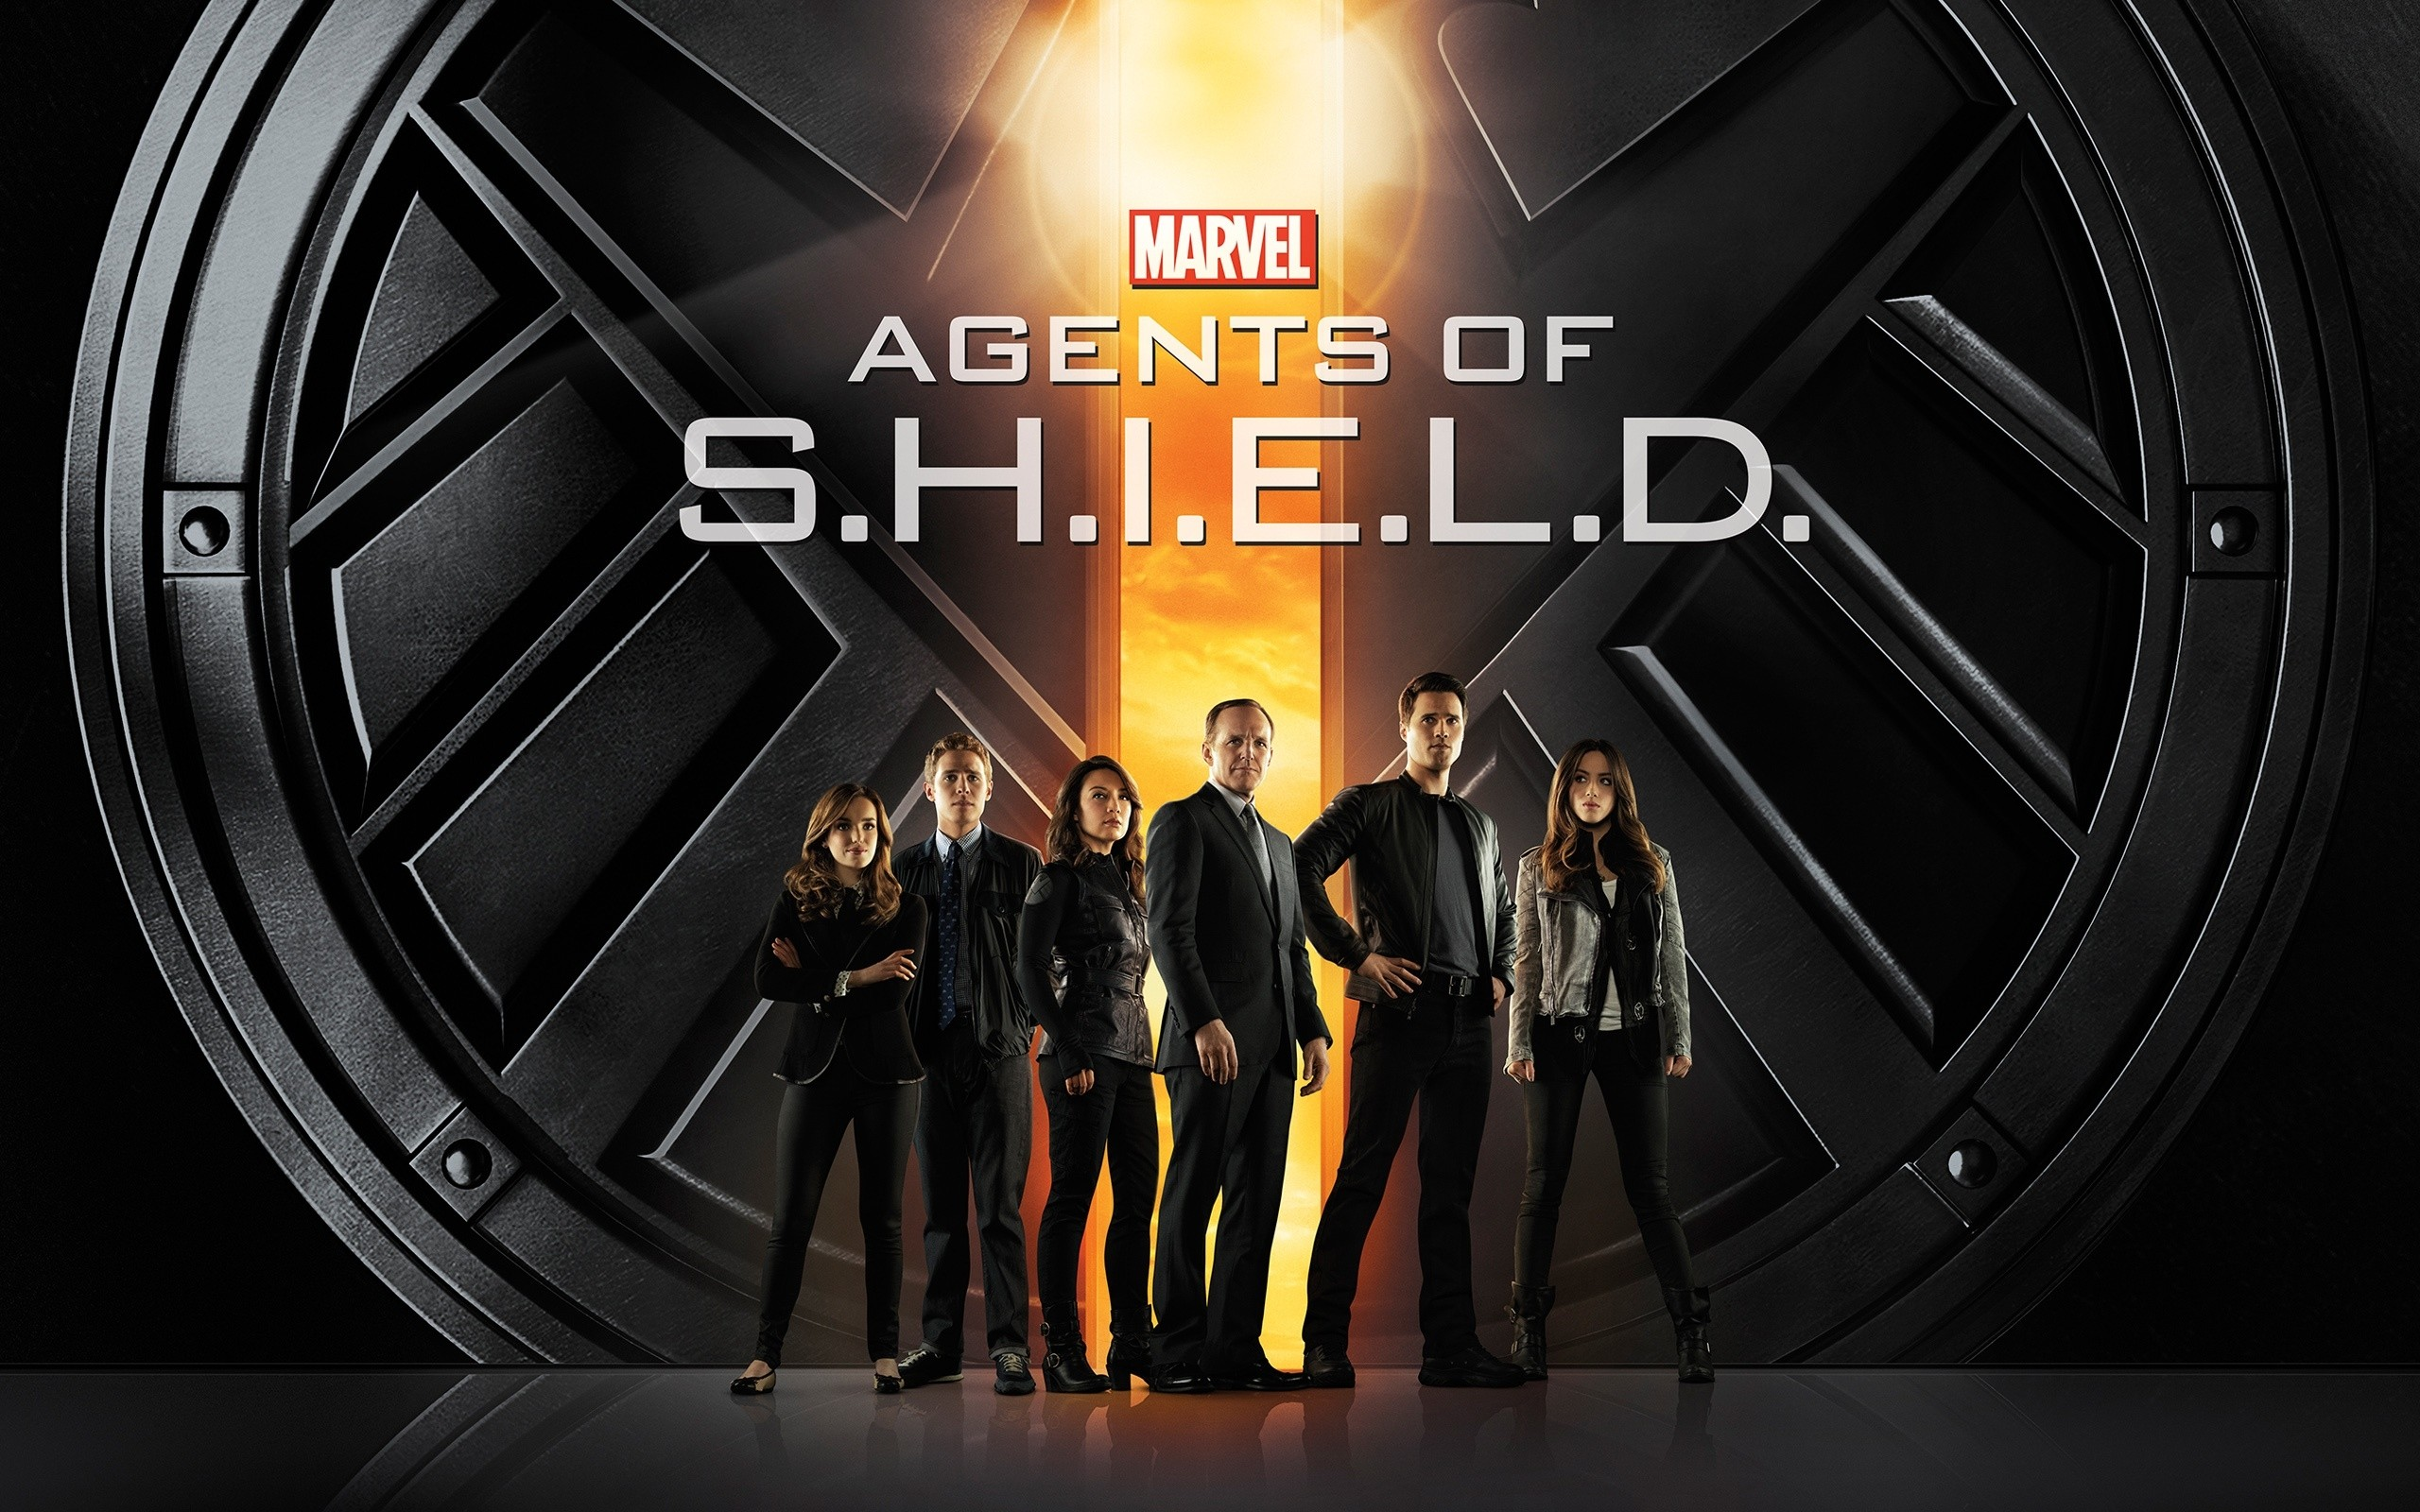 2560x1600 90 Marvel's Agents of S.H.I.E.L.D. HD Wallpapers | Backgrounds - Wallpaper  Abyss